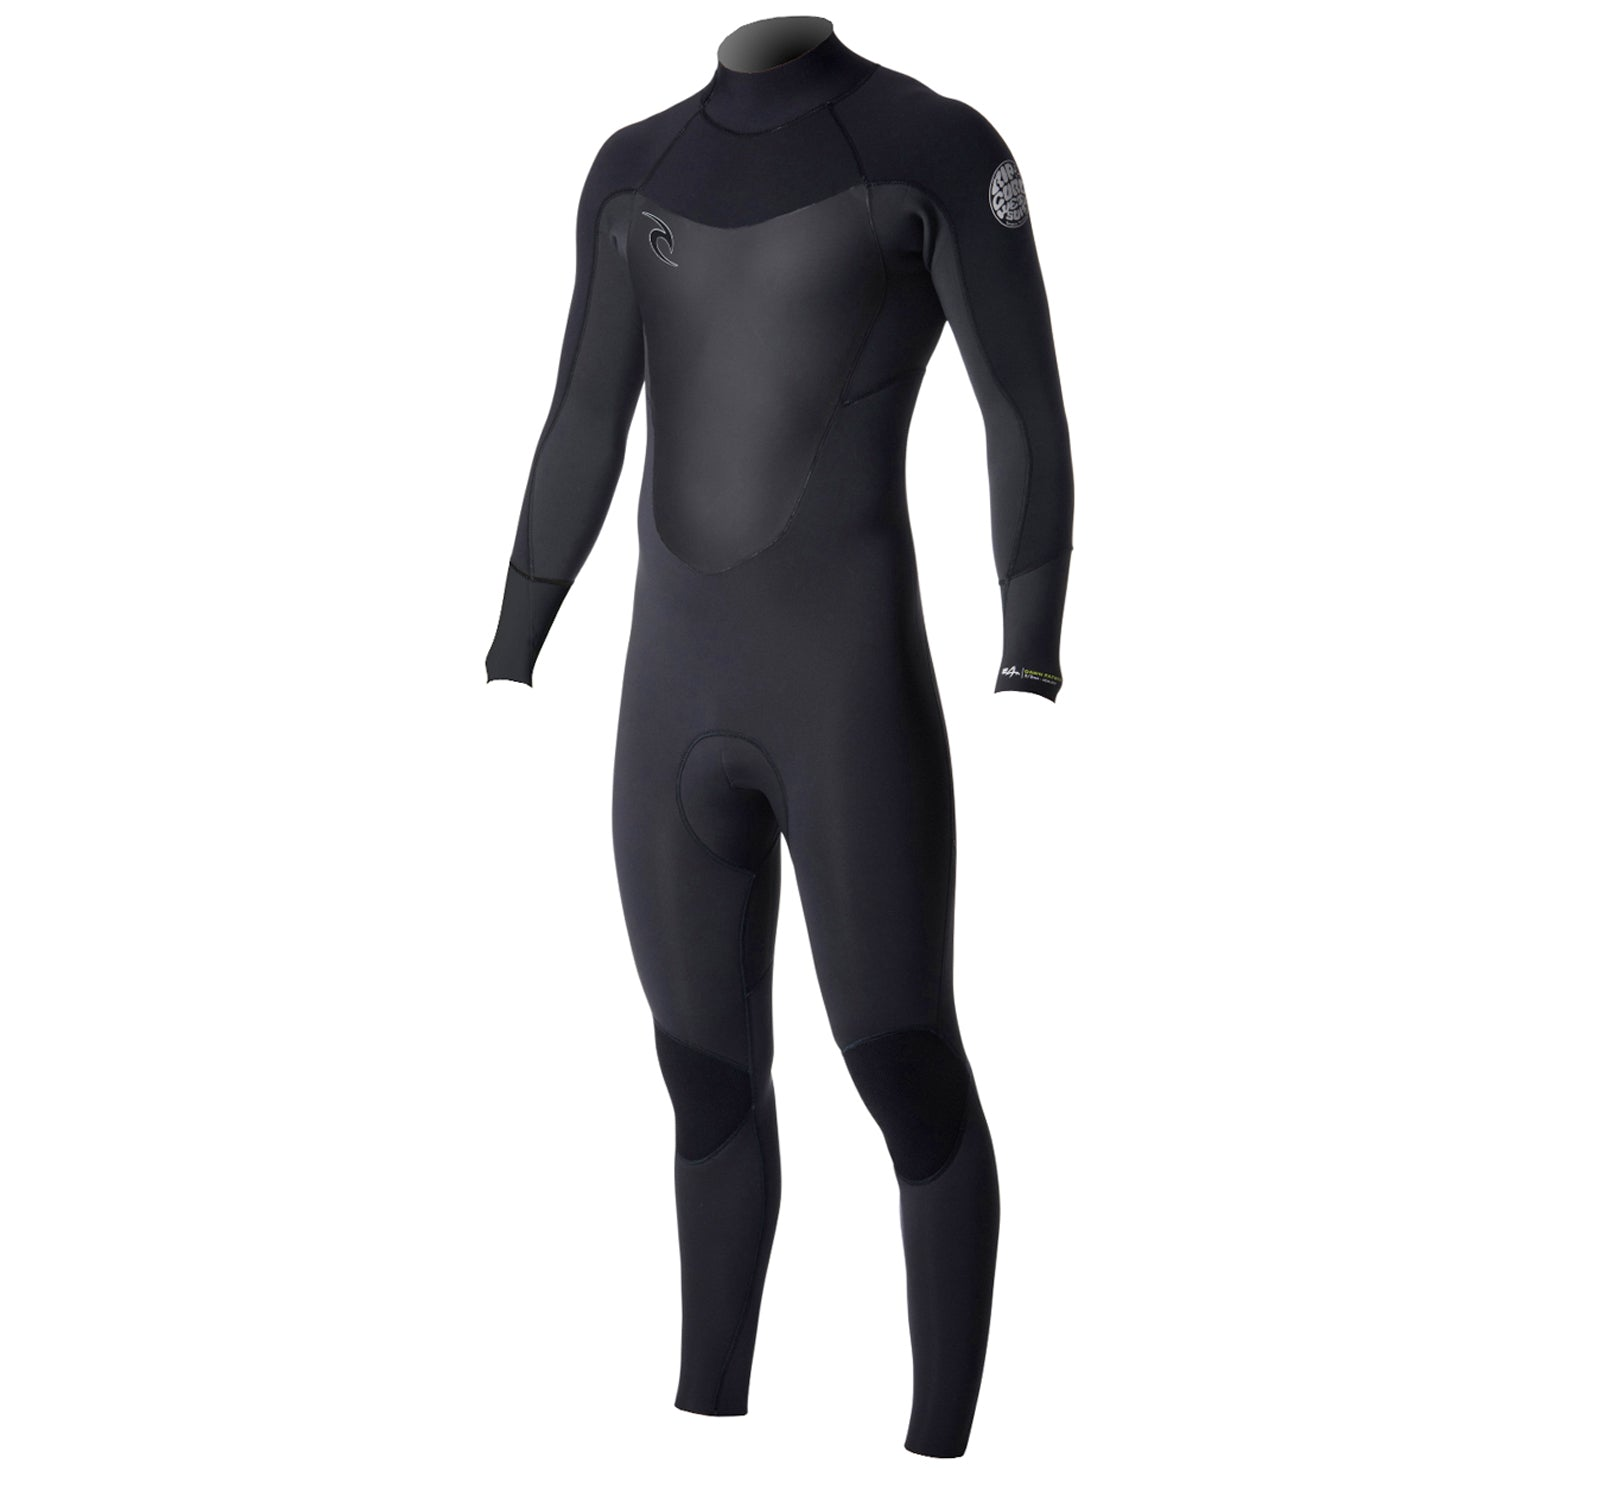 Rip Curl Dawn Patrol 3/2 Men's Back Zip Fullsuit Wetsuit